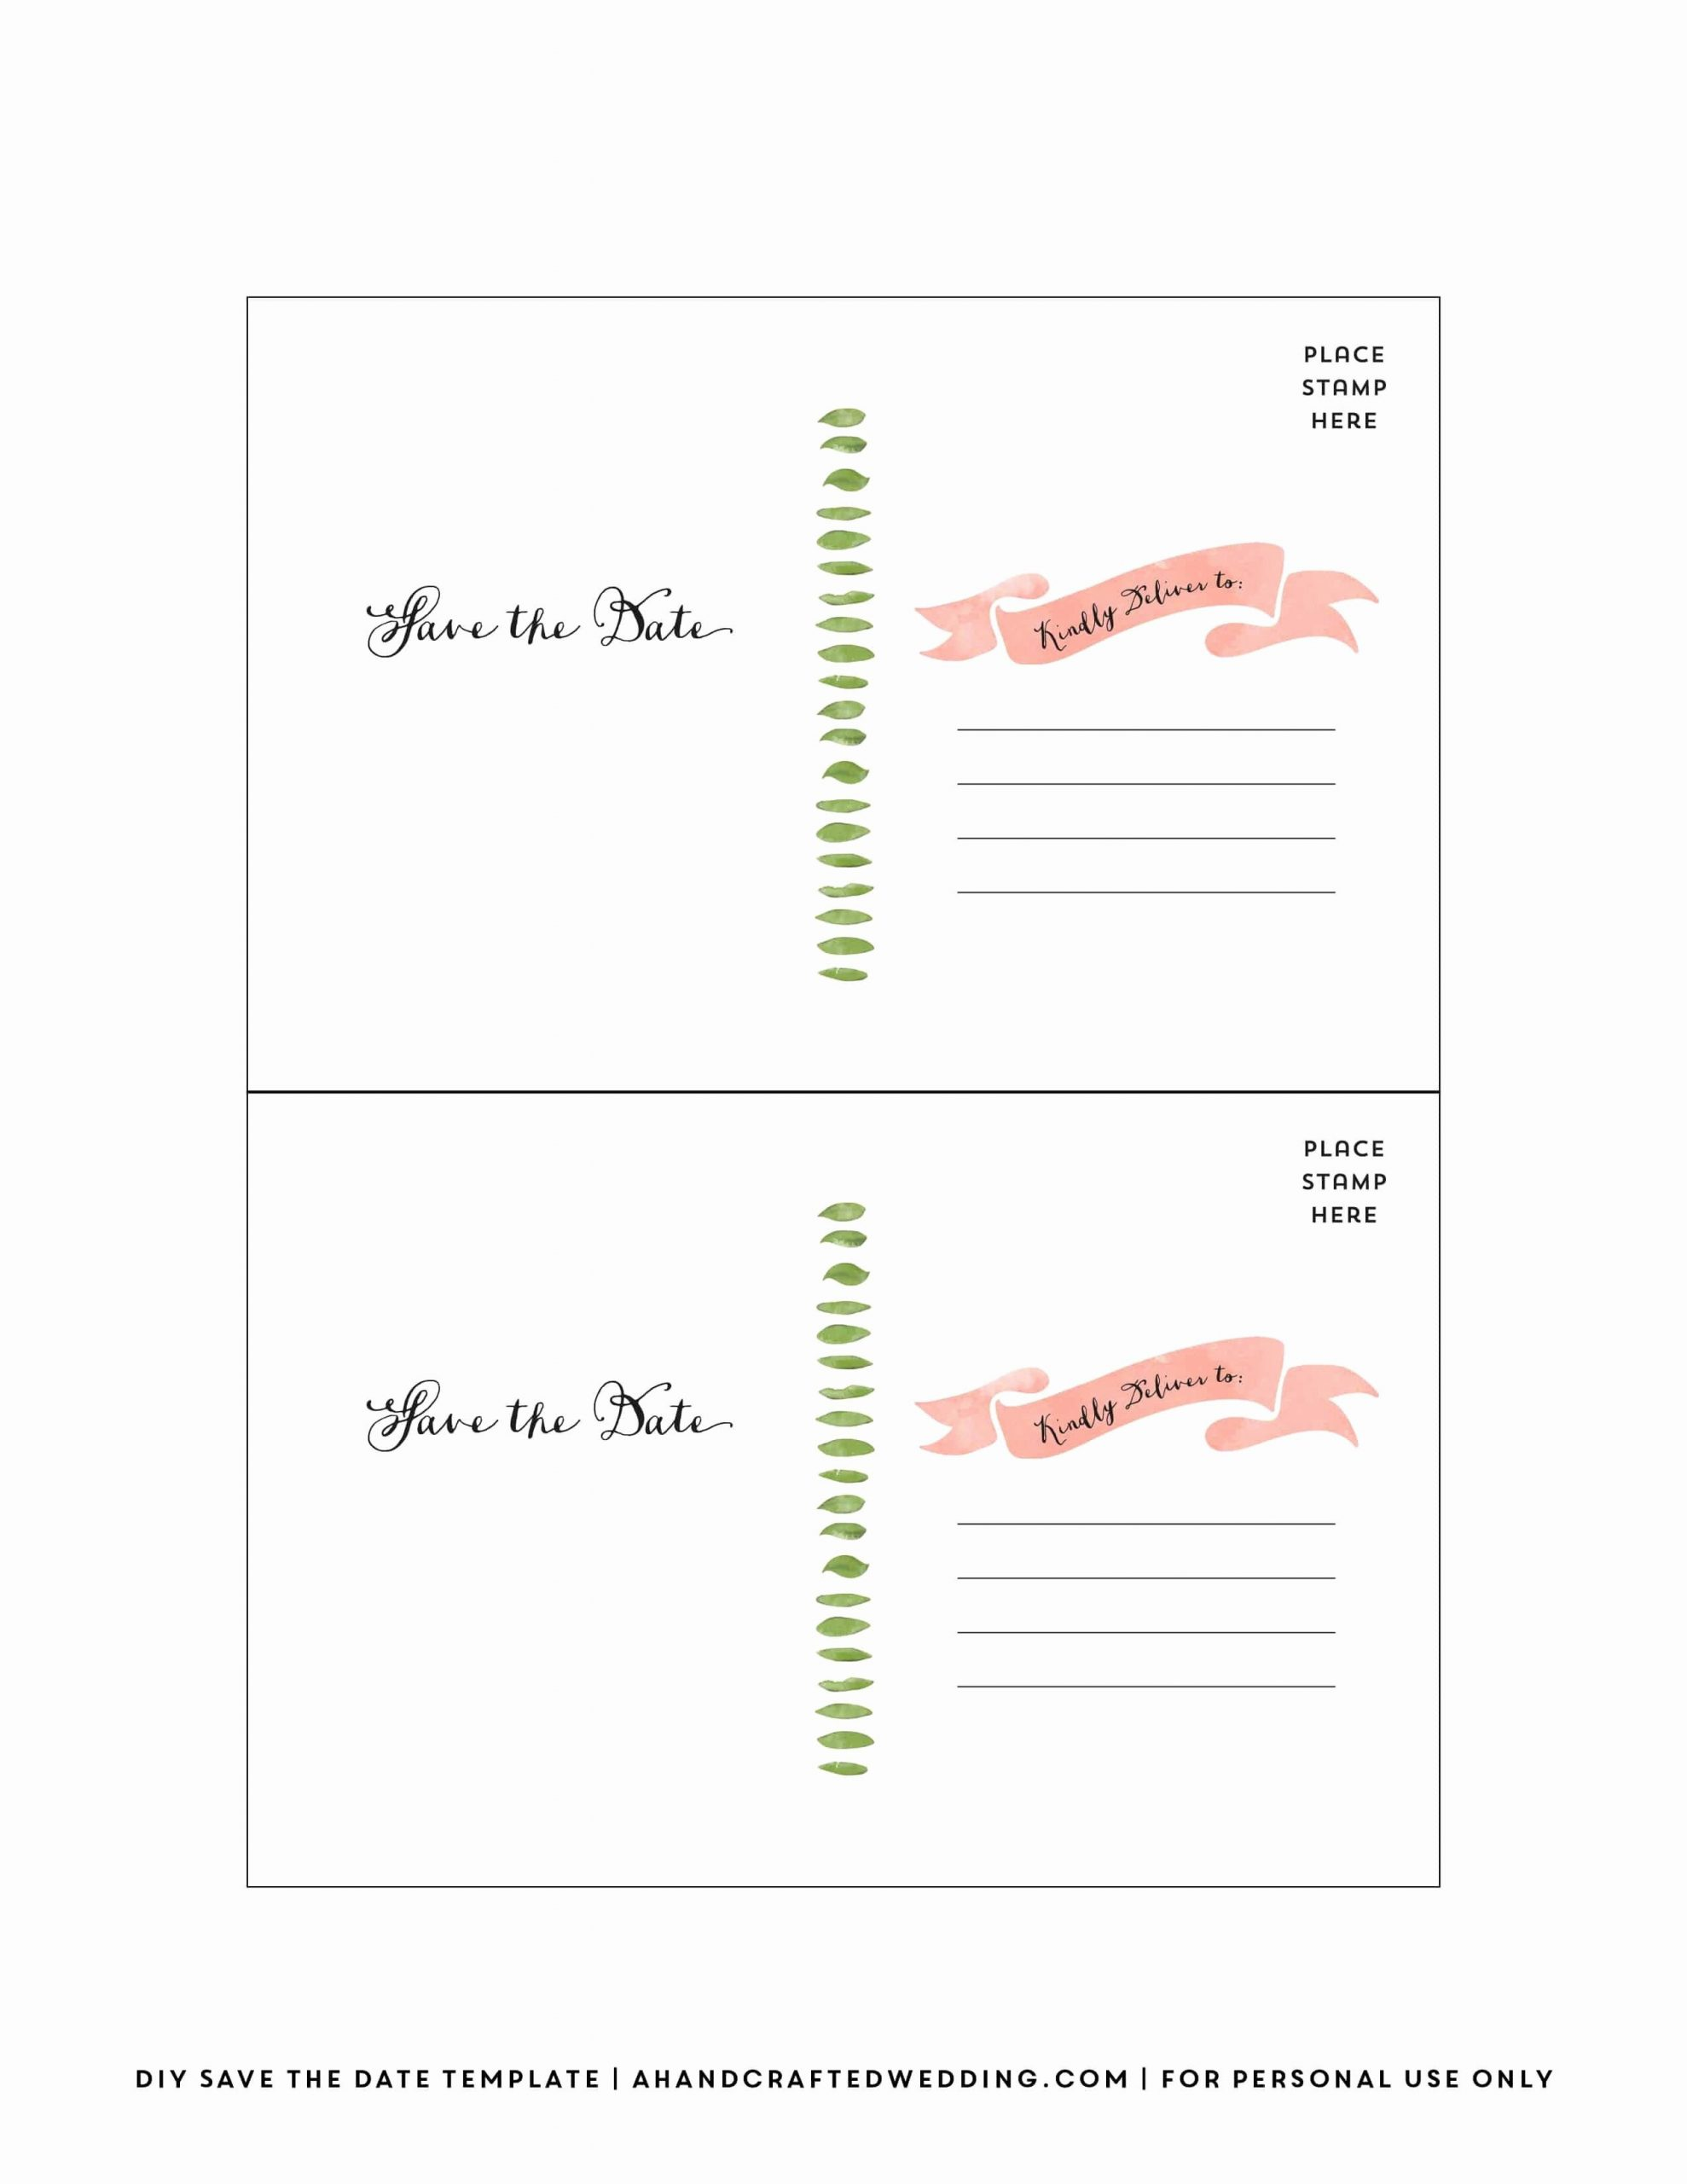 Postcards Save the Date Template Luxury Diy Save the Date